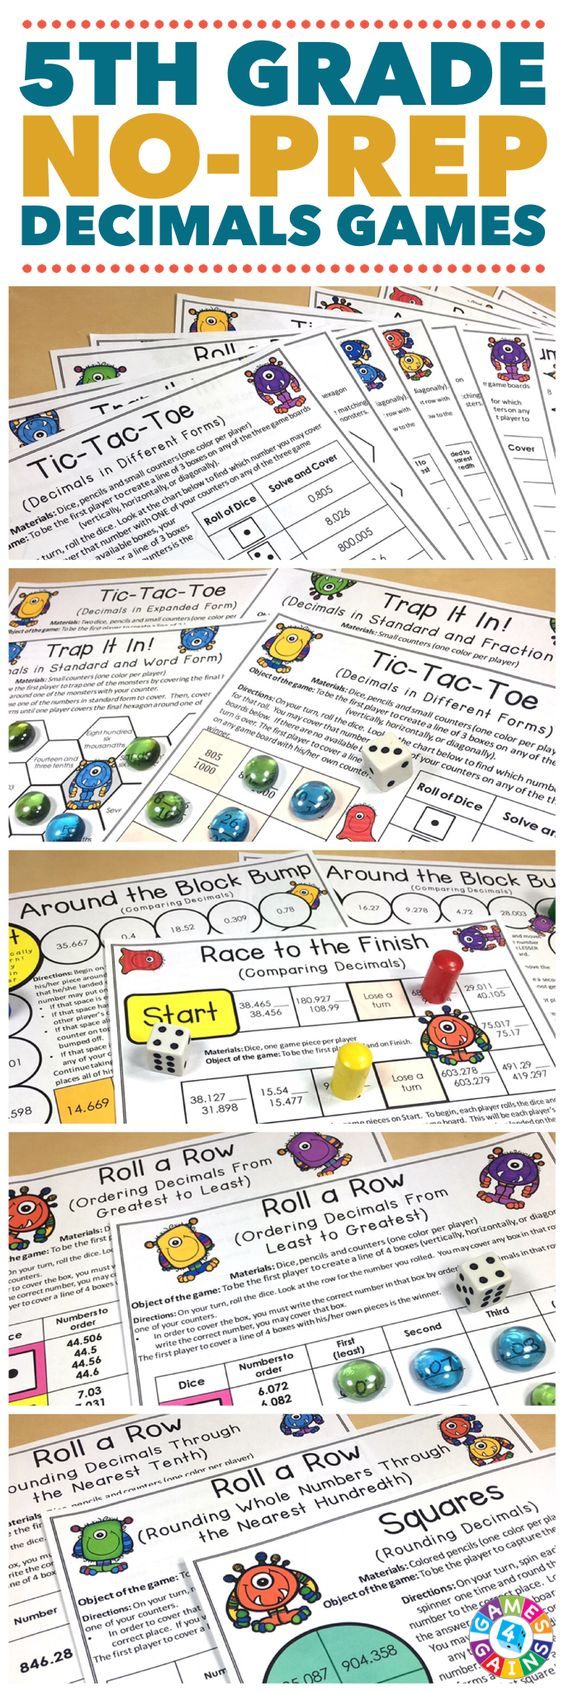 """""""My students loved these activities! Great way to practice and reinforce decimal skills!"""" Decimals Games for 5th Grade contains 13 fun and engaging printable board games to help students to practice reading, comparing, ordering, and rounding decimals standards. These games are so simple to use and require very minimal prep. They are perfect to use in math centers or as extension activities when students complete their work!"""